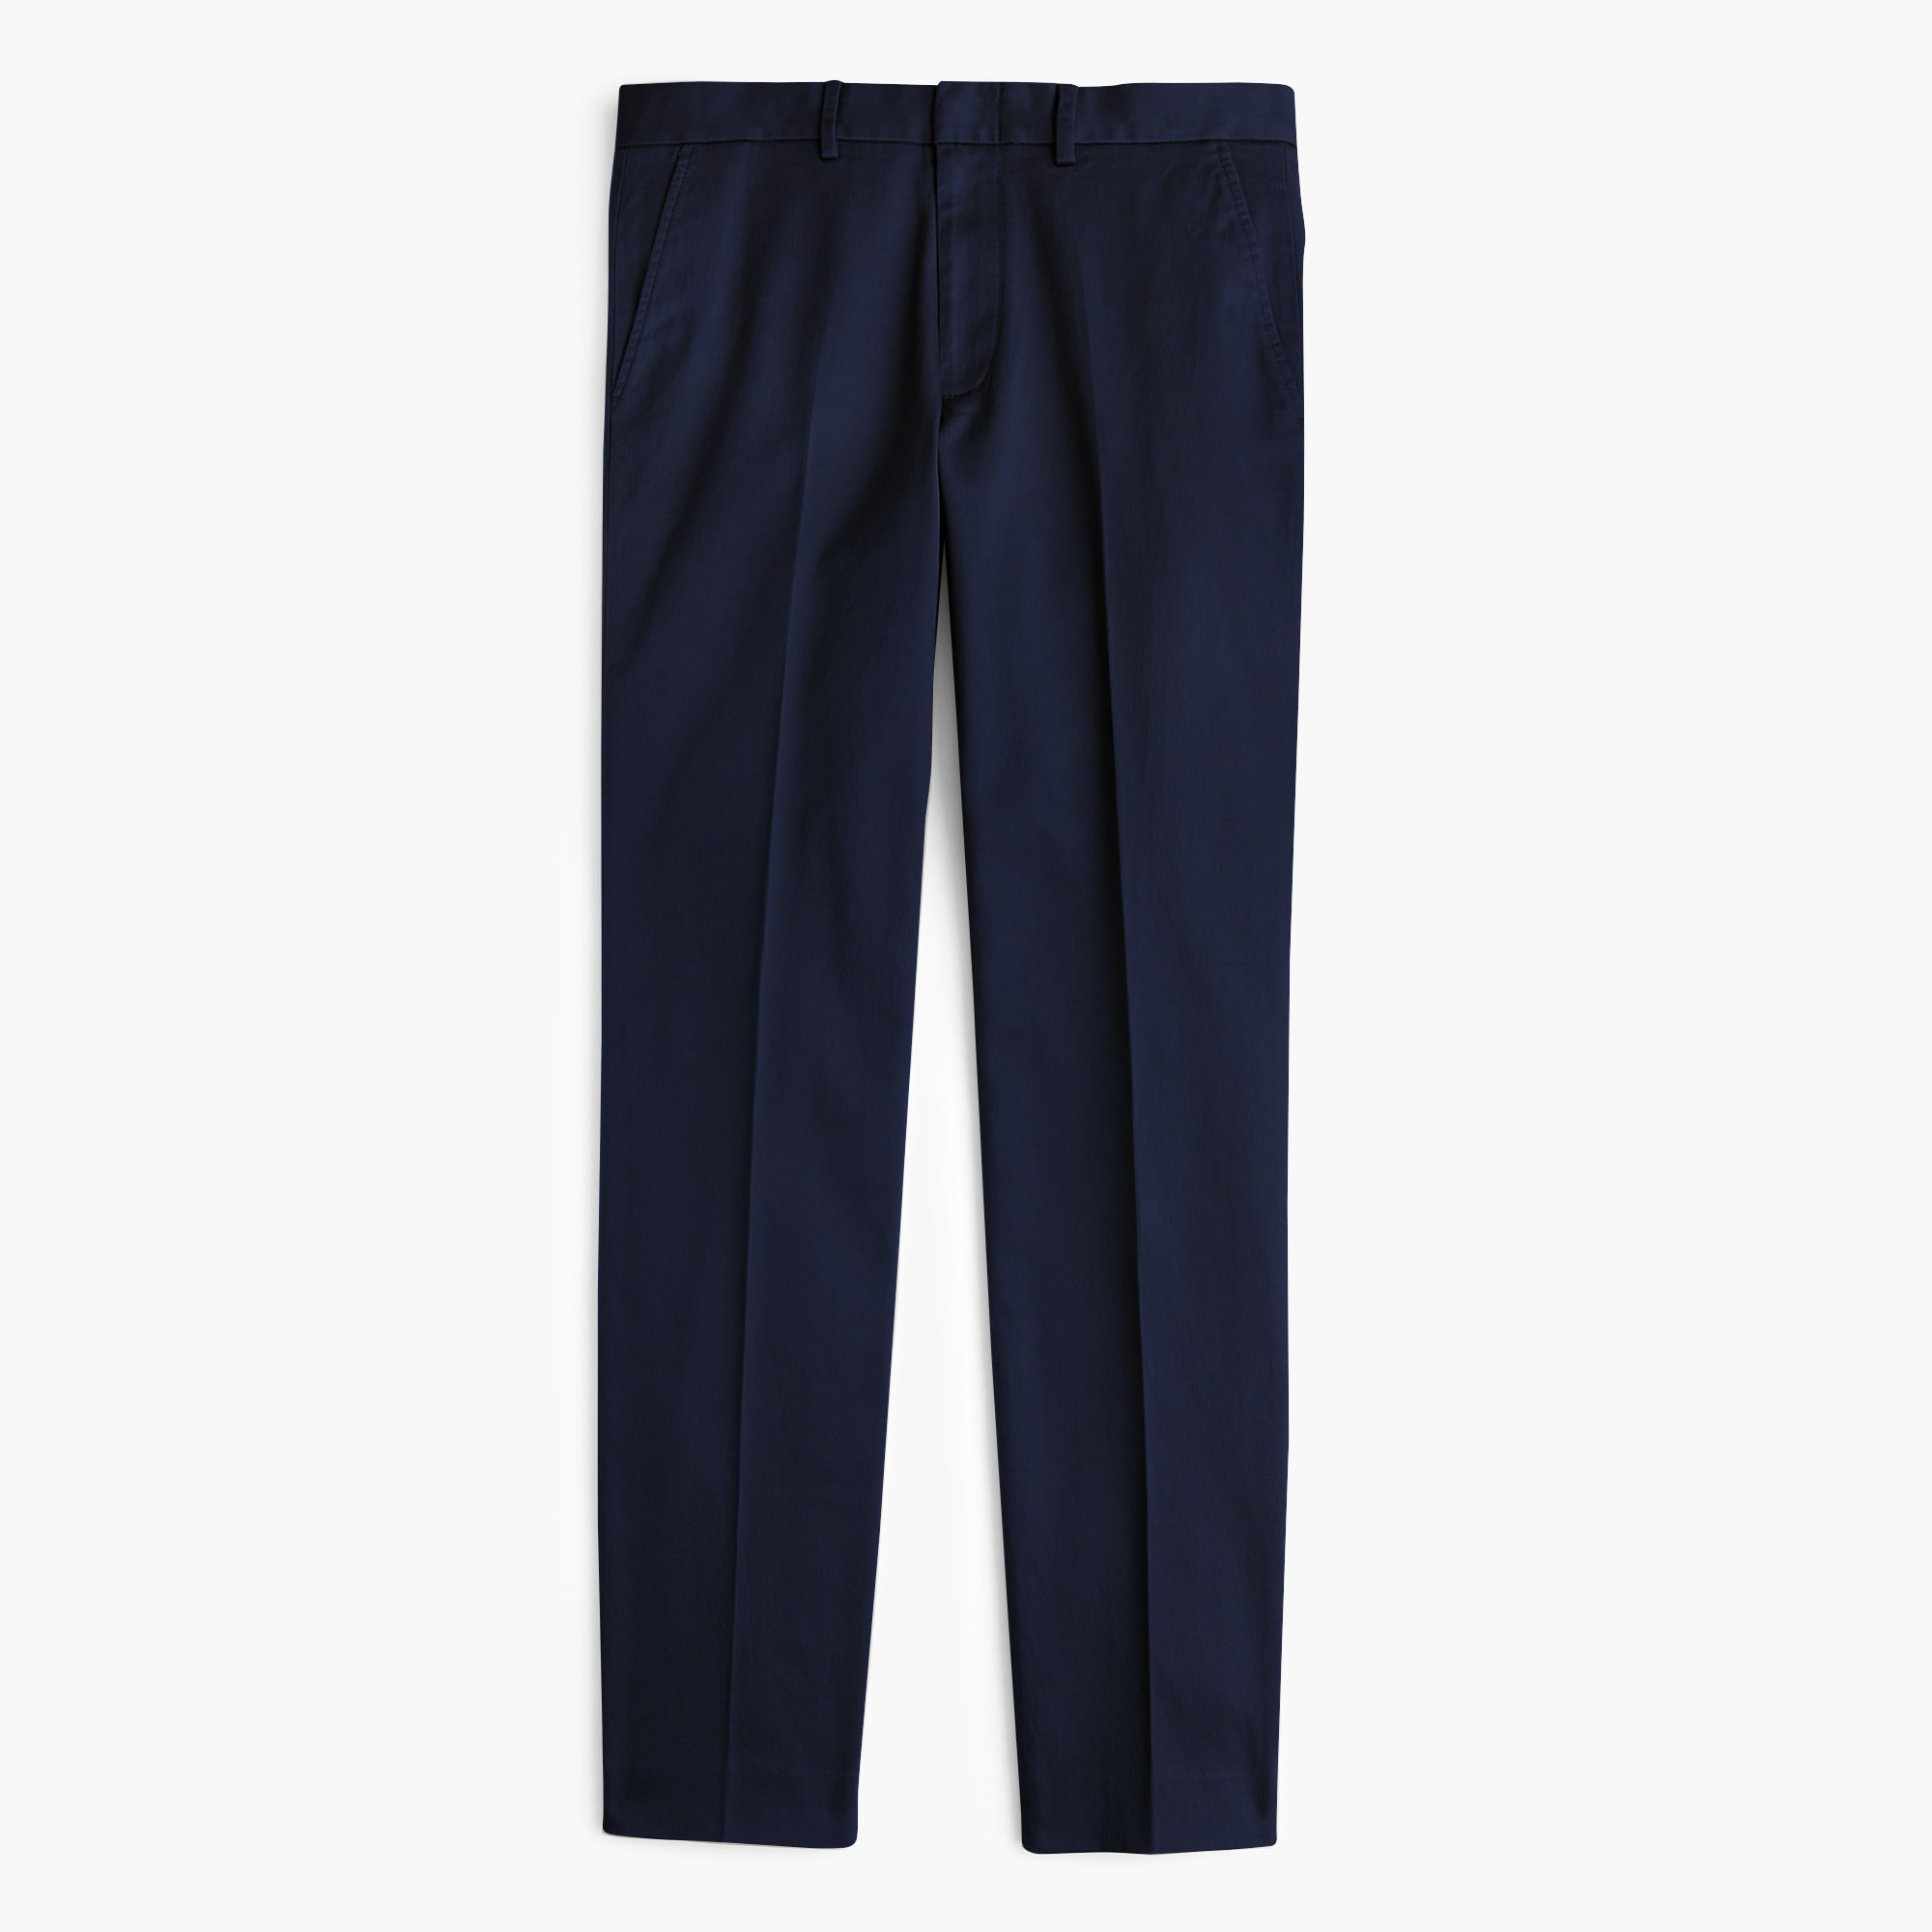 Image 2 for Ludlow Slim-fit pant in stretch chino